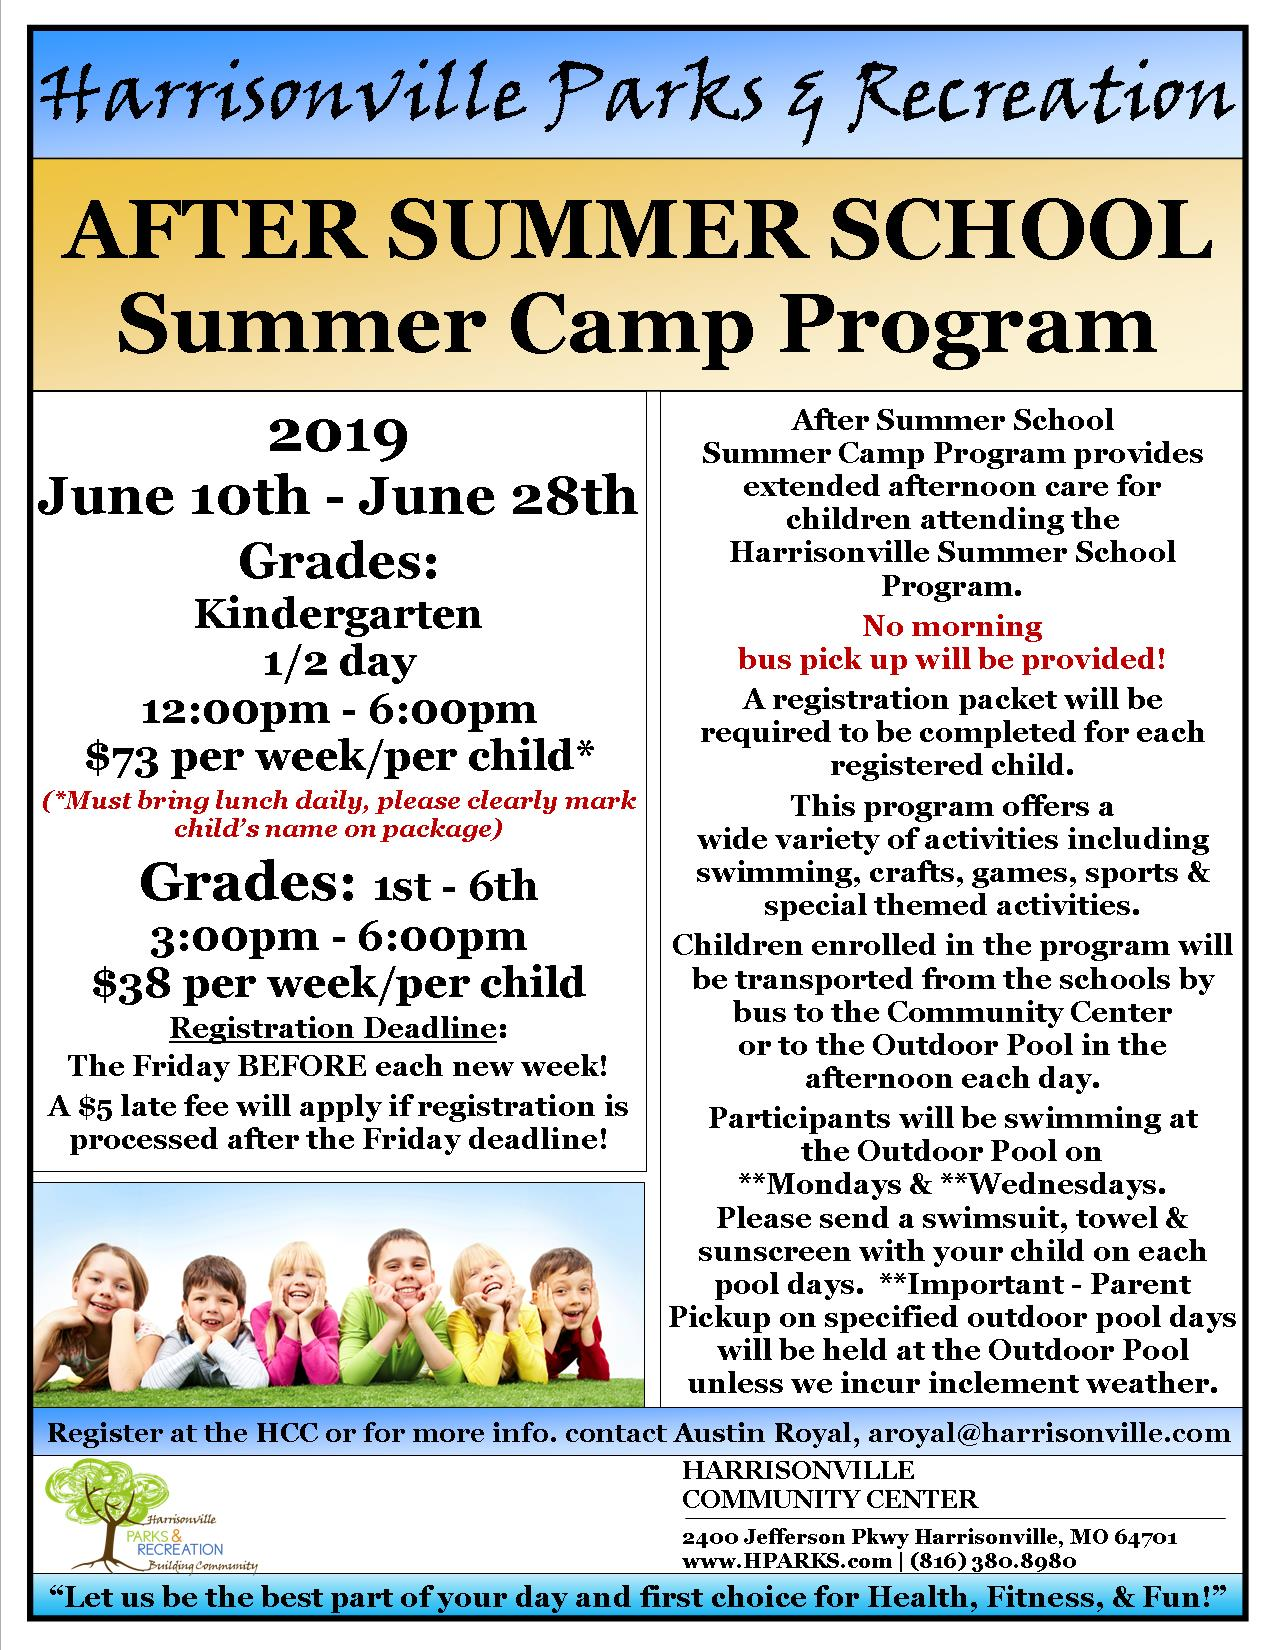 After Summer School 2019